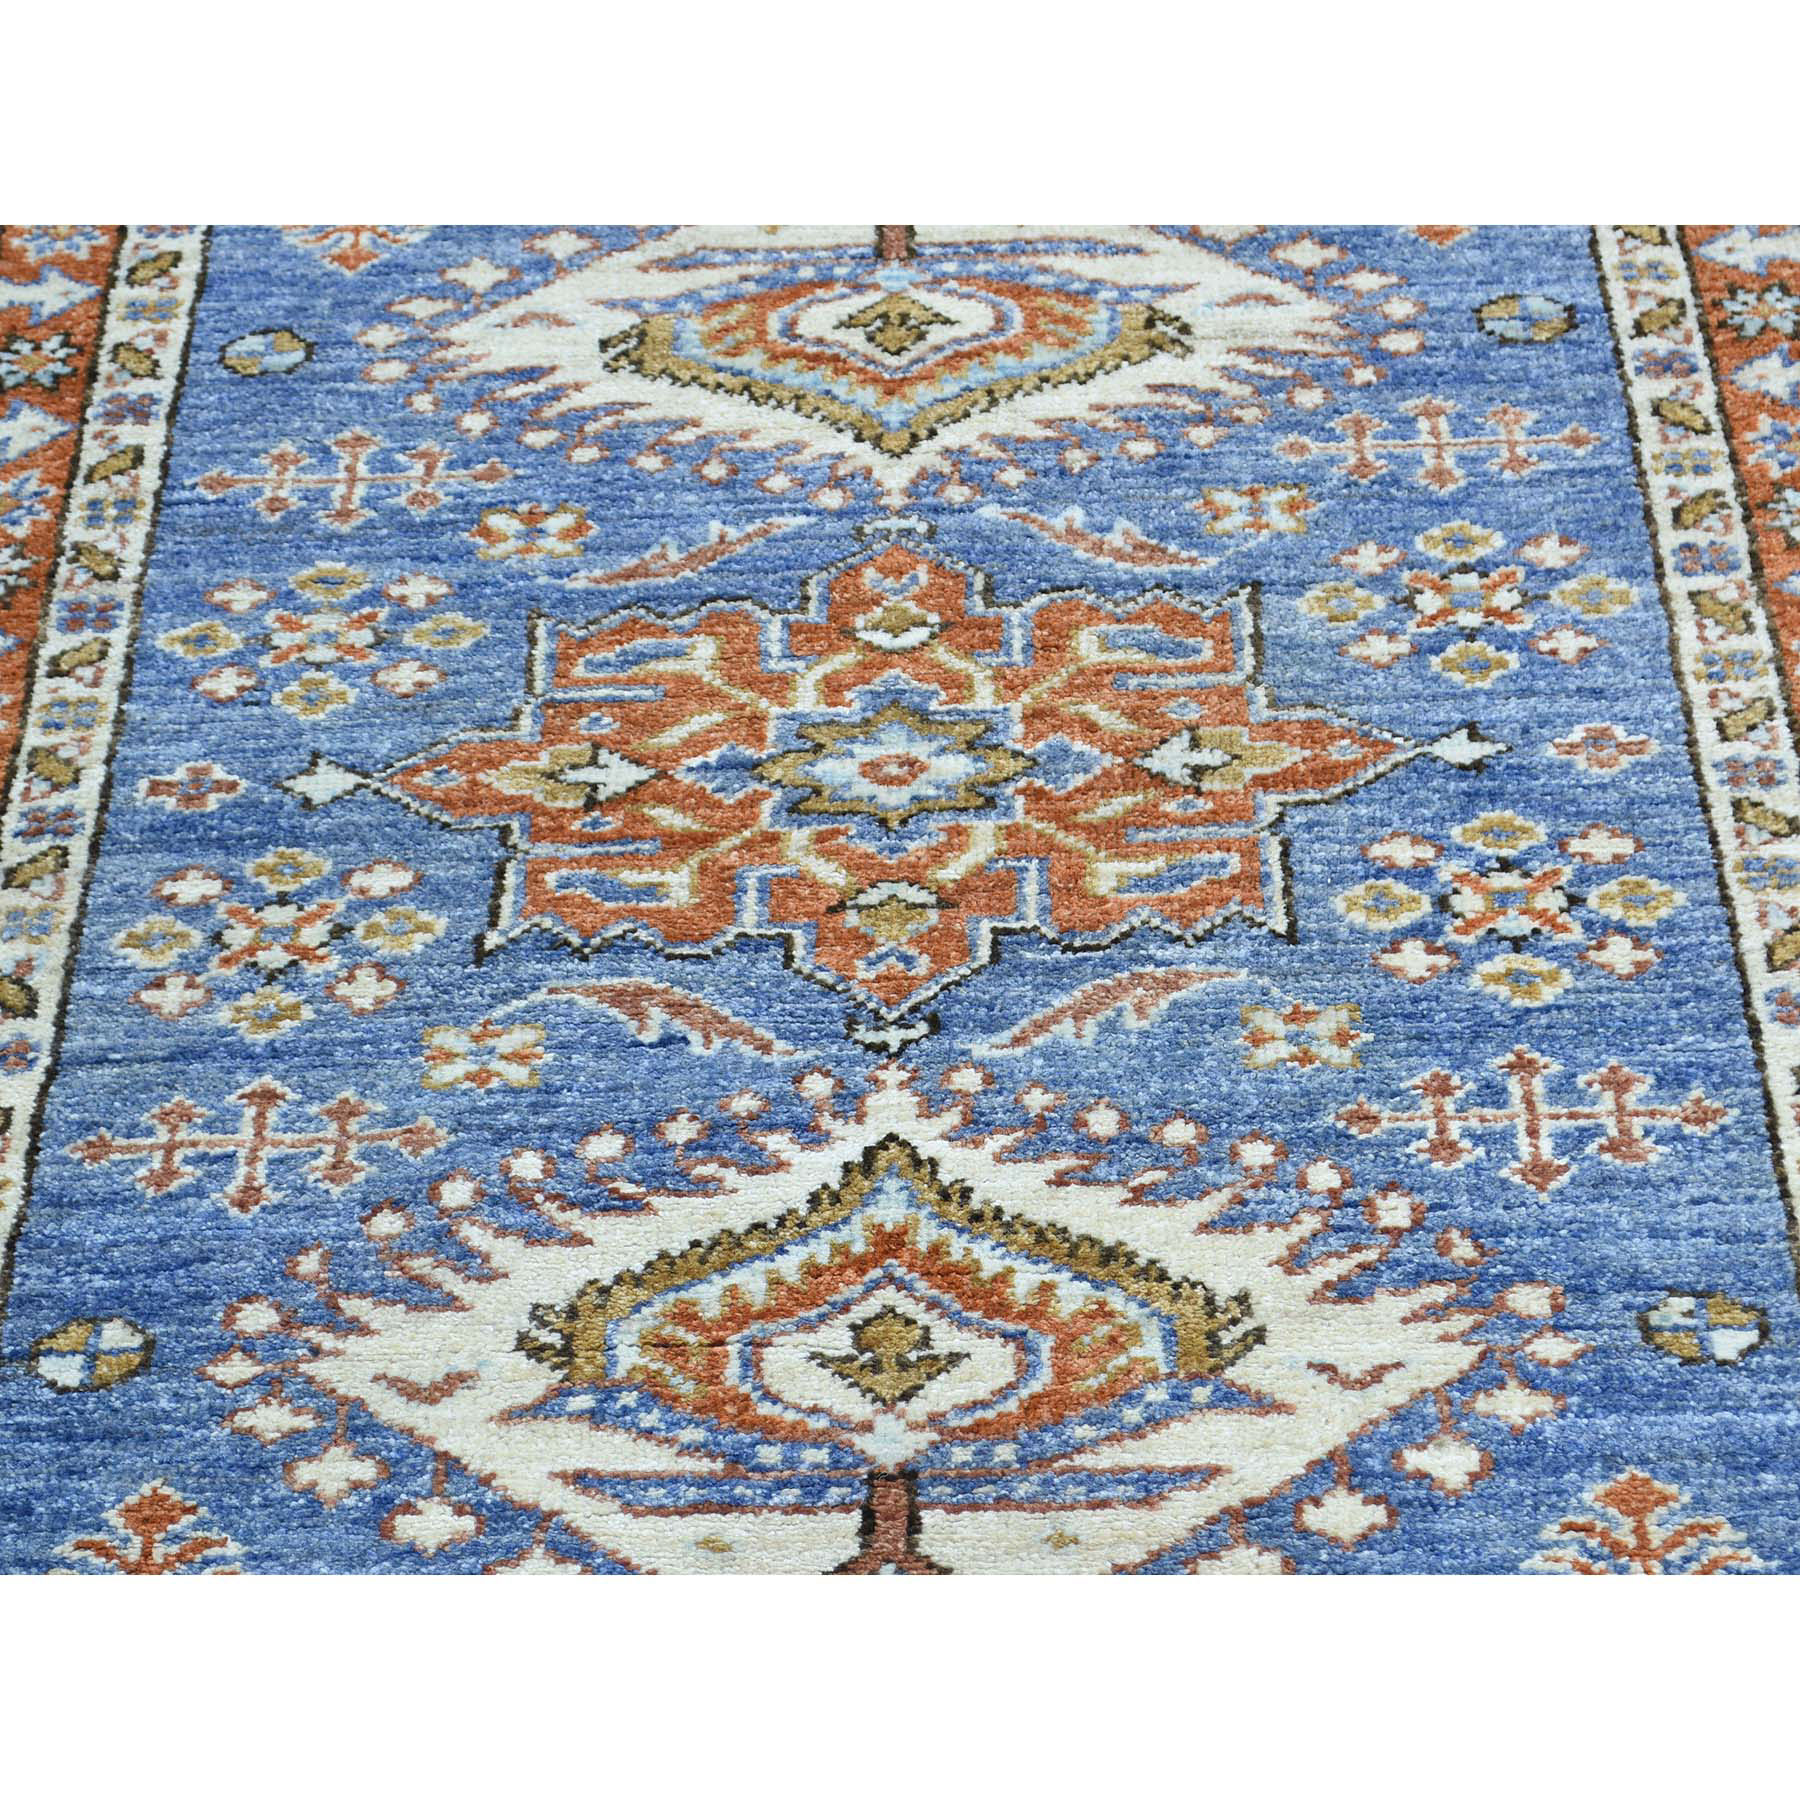 2-9 x5-10  Hand-Knotted Peshawar with Karajeh Design Oriental Runner Rug